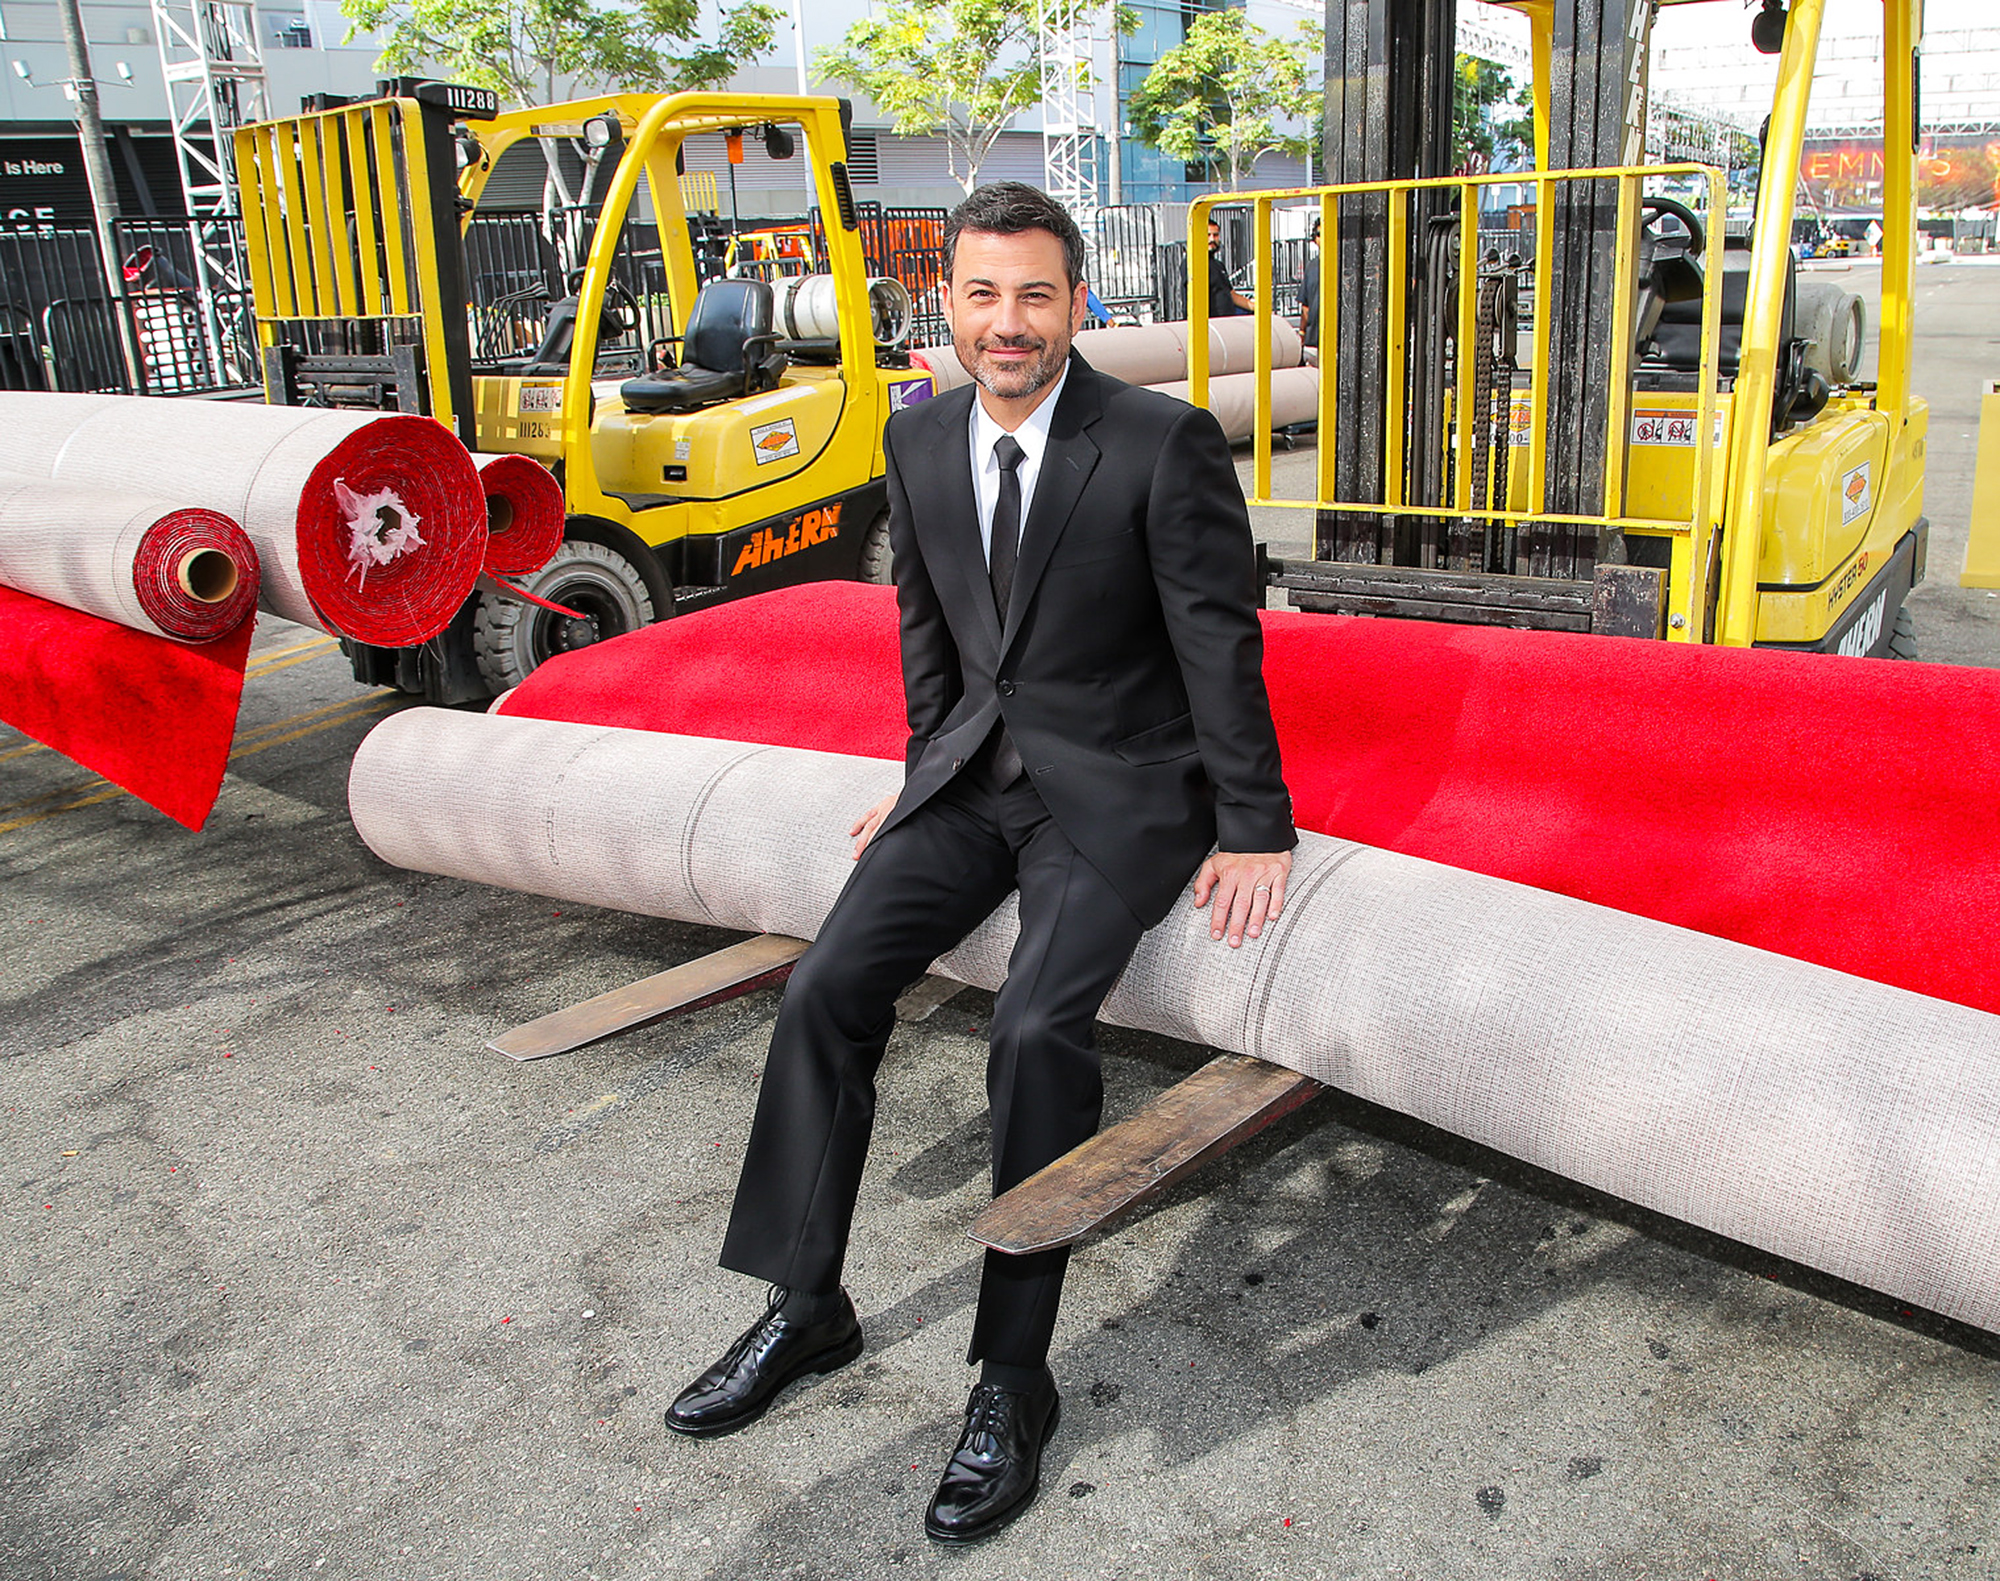 Jimmy Kimmel with the EMMY Red Carpet, before roll out, in Los Angeles, on Sept. 14, 2016.